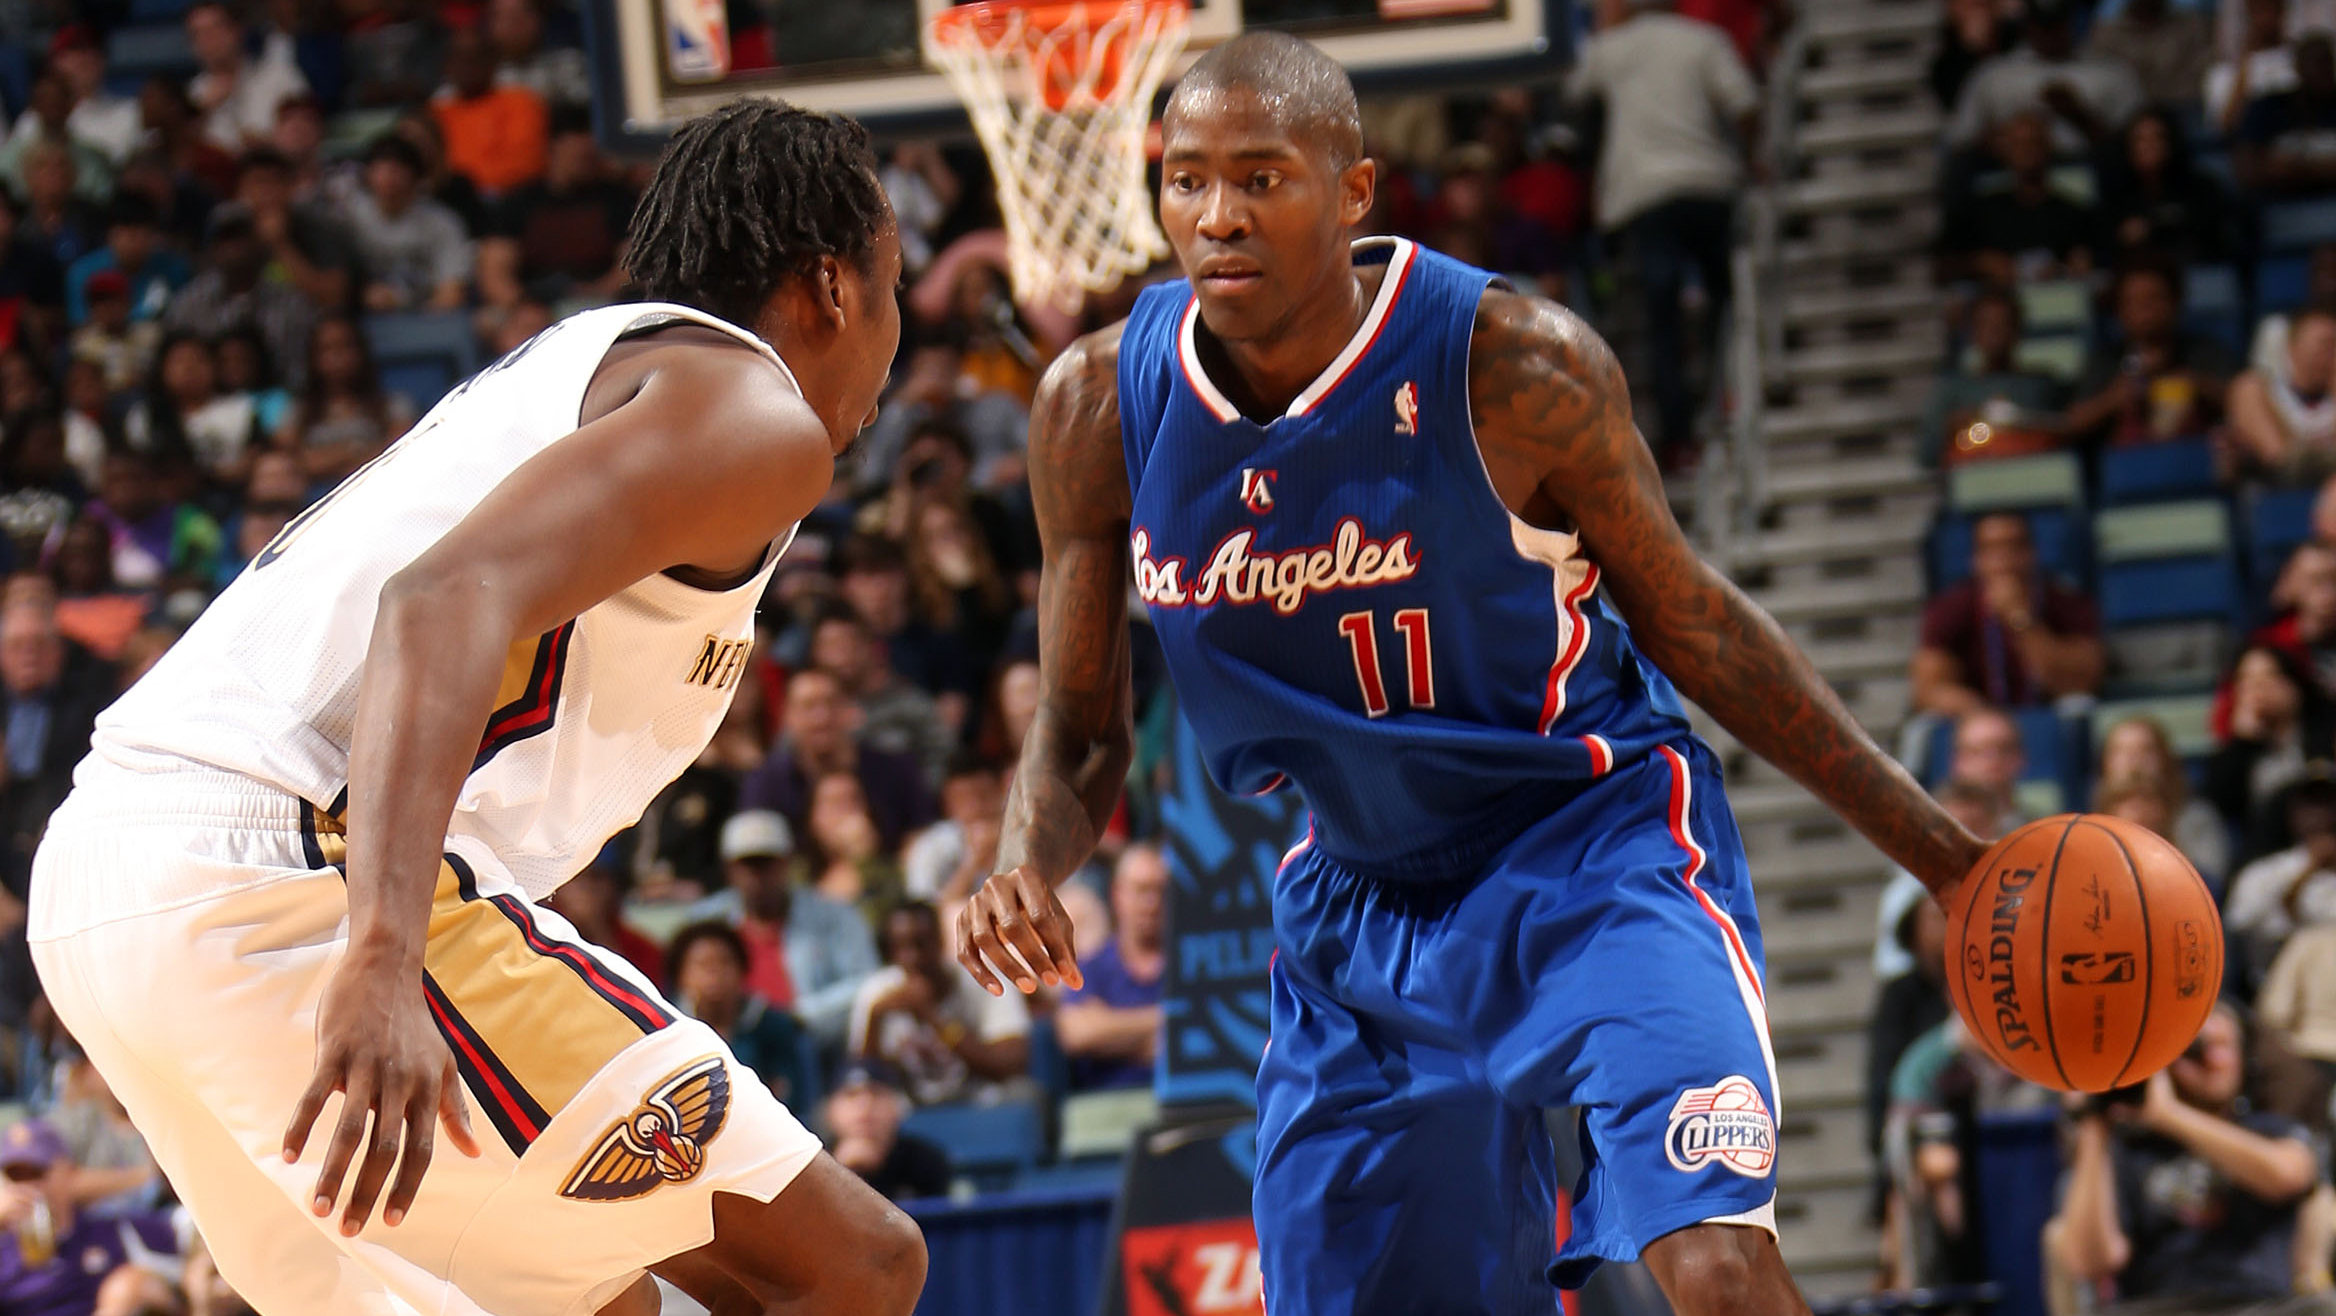 Jamal Crawford Wallpapers Clippers - 1374.2KB